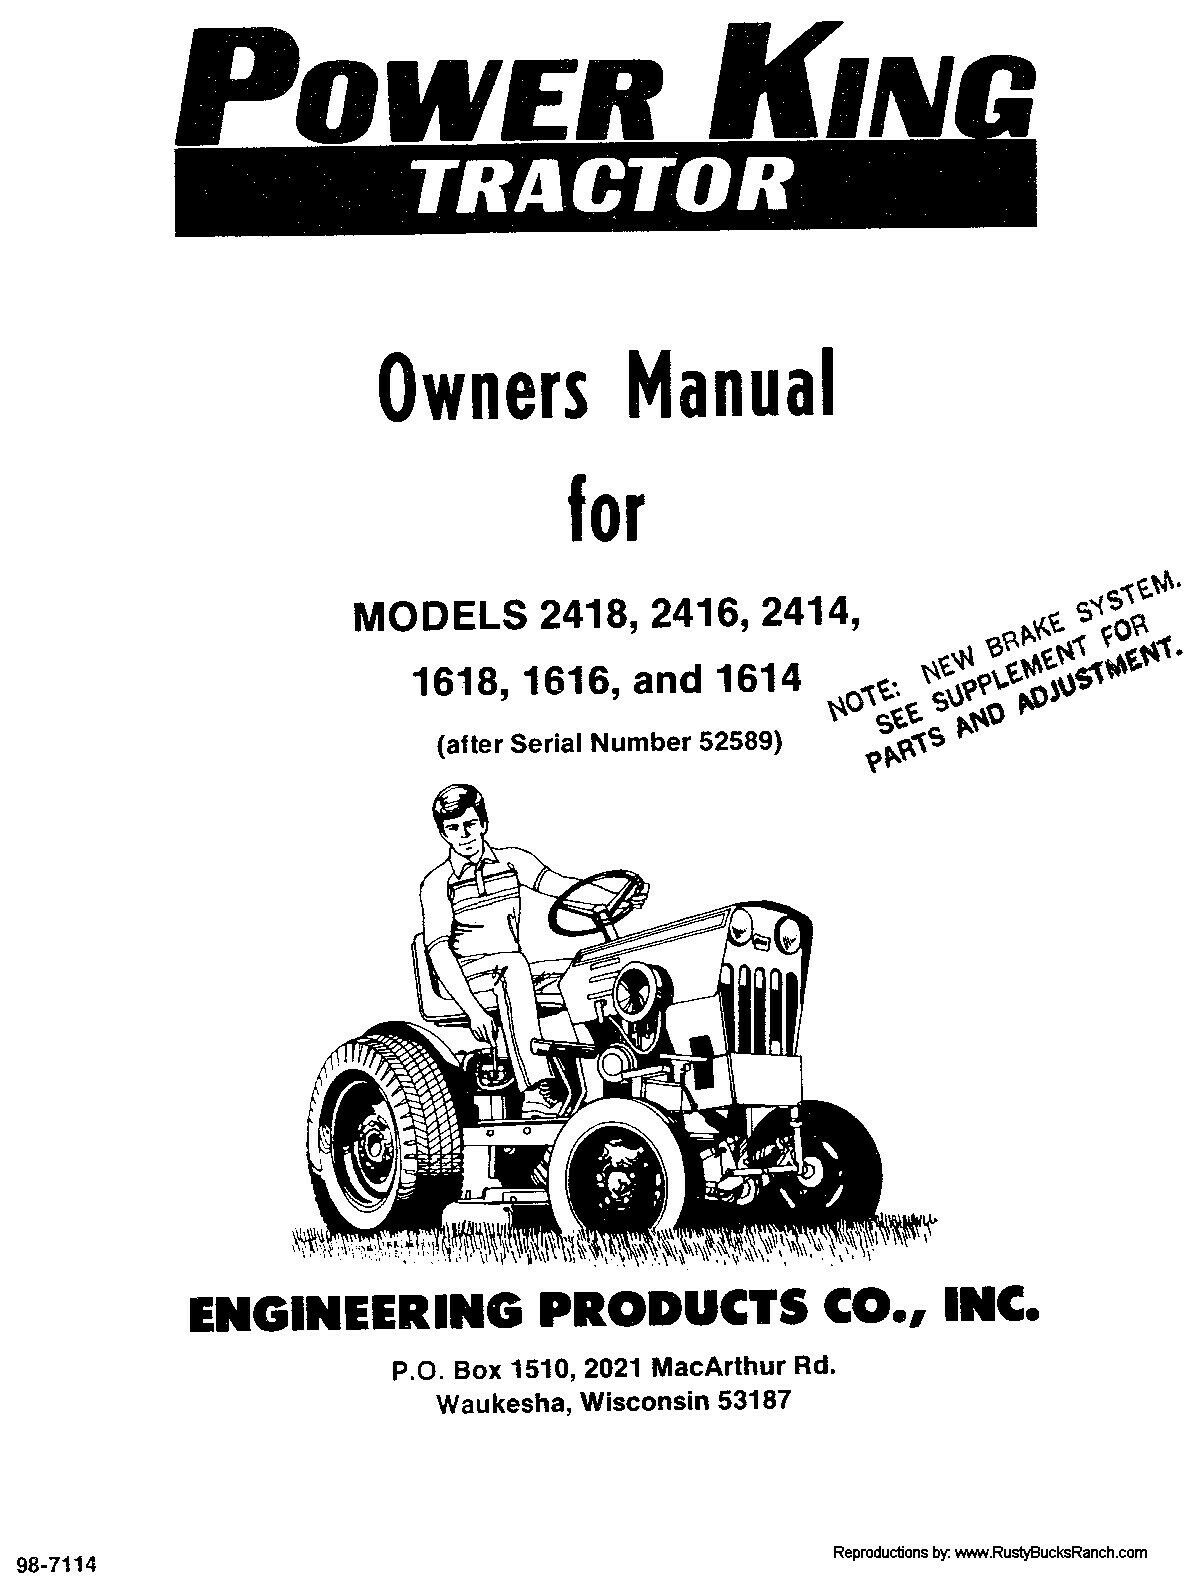 Power King 1614, 1616, 1618, 2414, 2416, 2418 Tractor Operator Manual 1 of  5Only 5 available ...